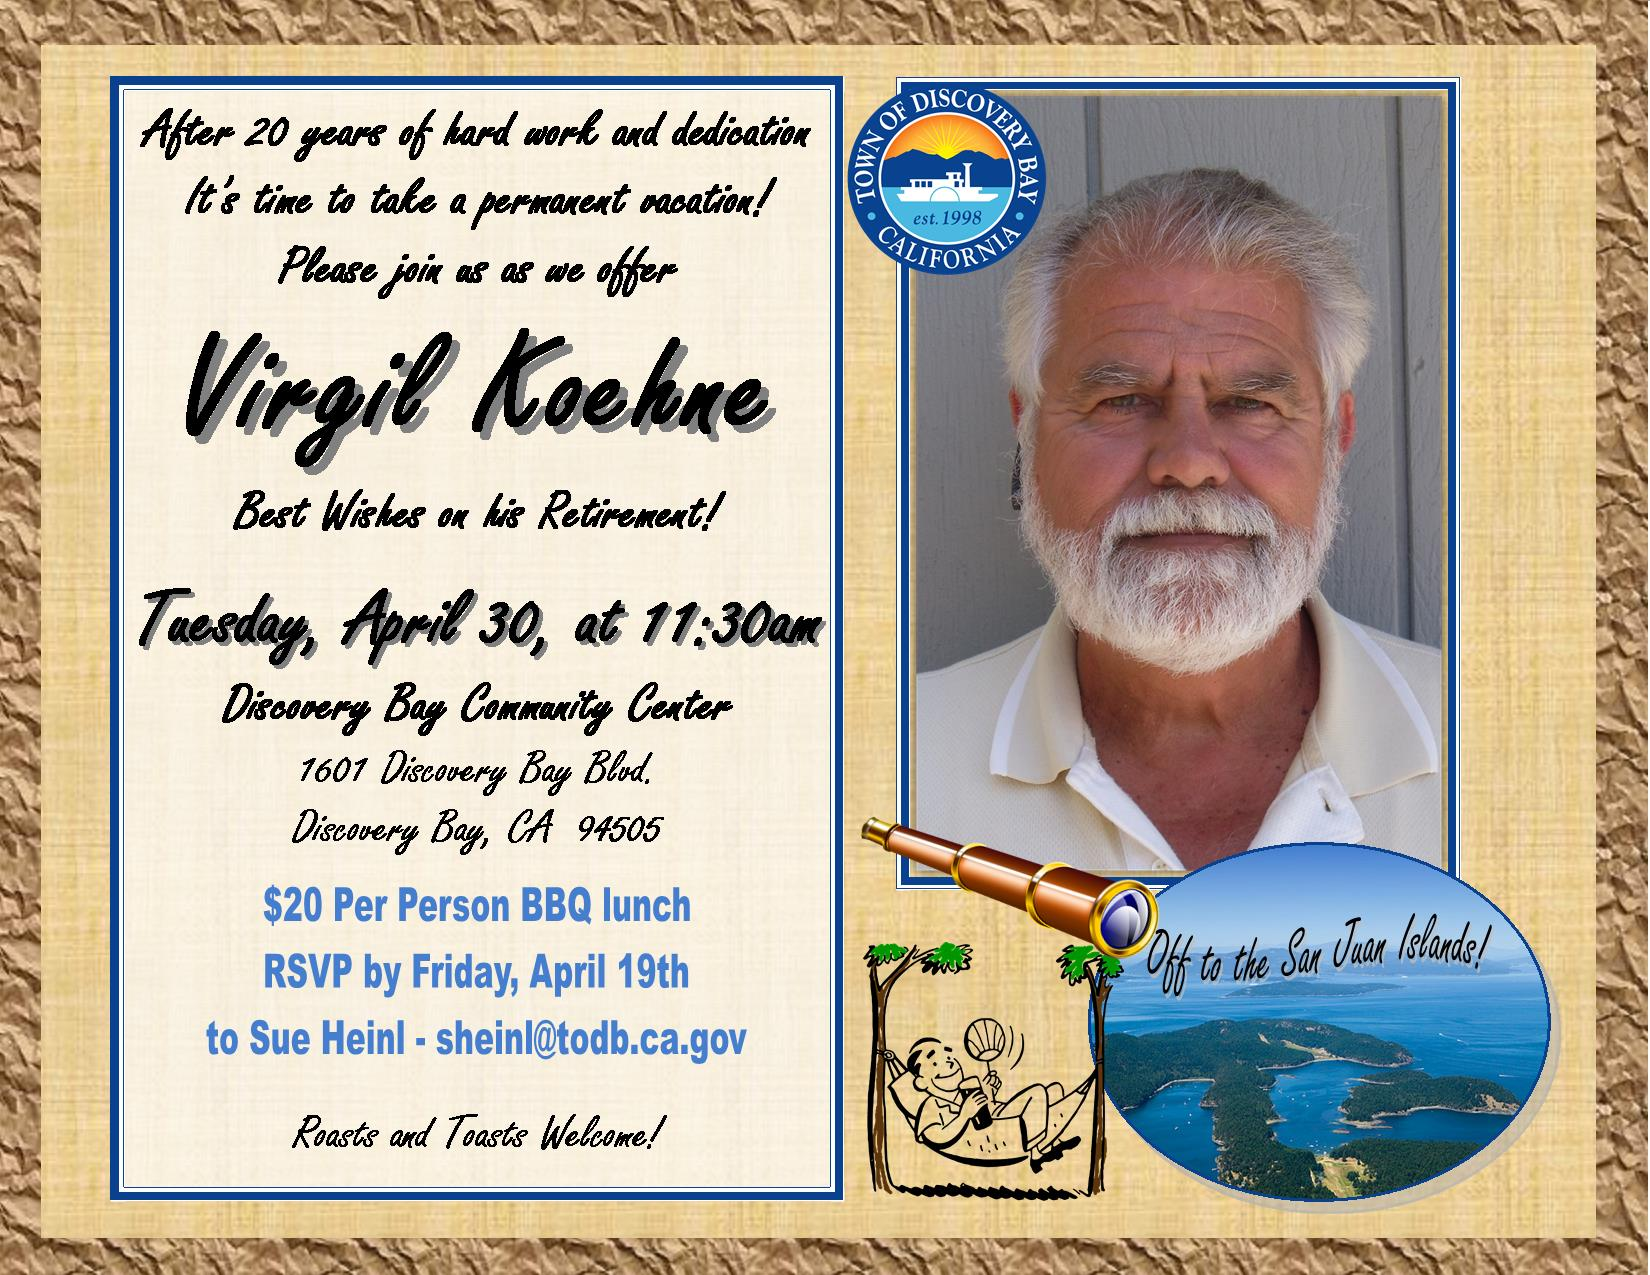 Virgil Koehne's Retirement